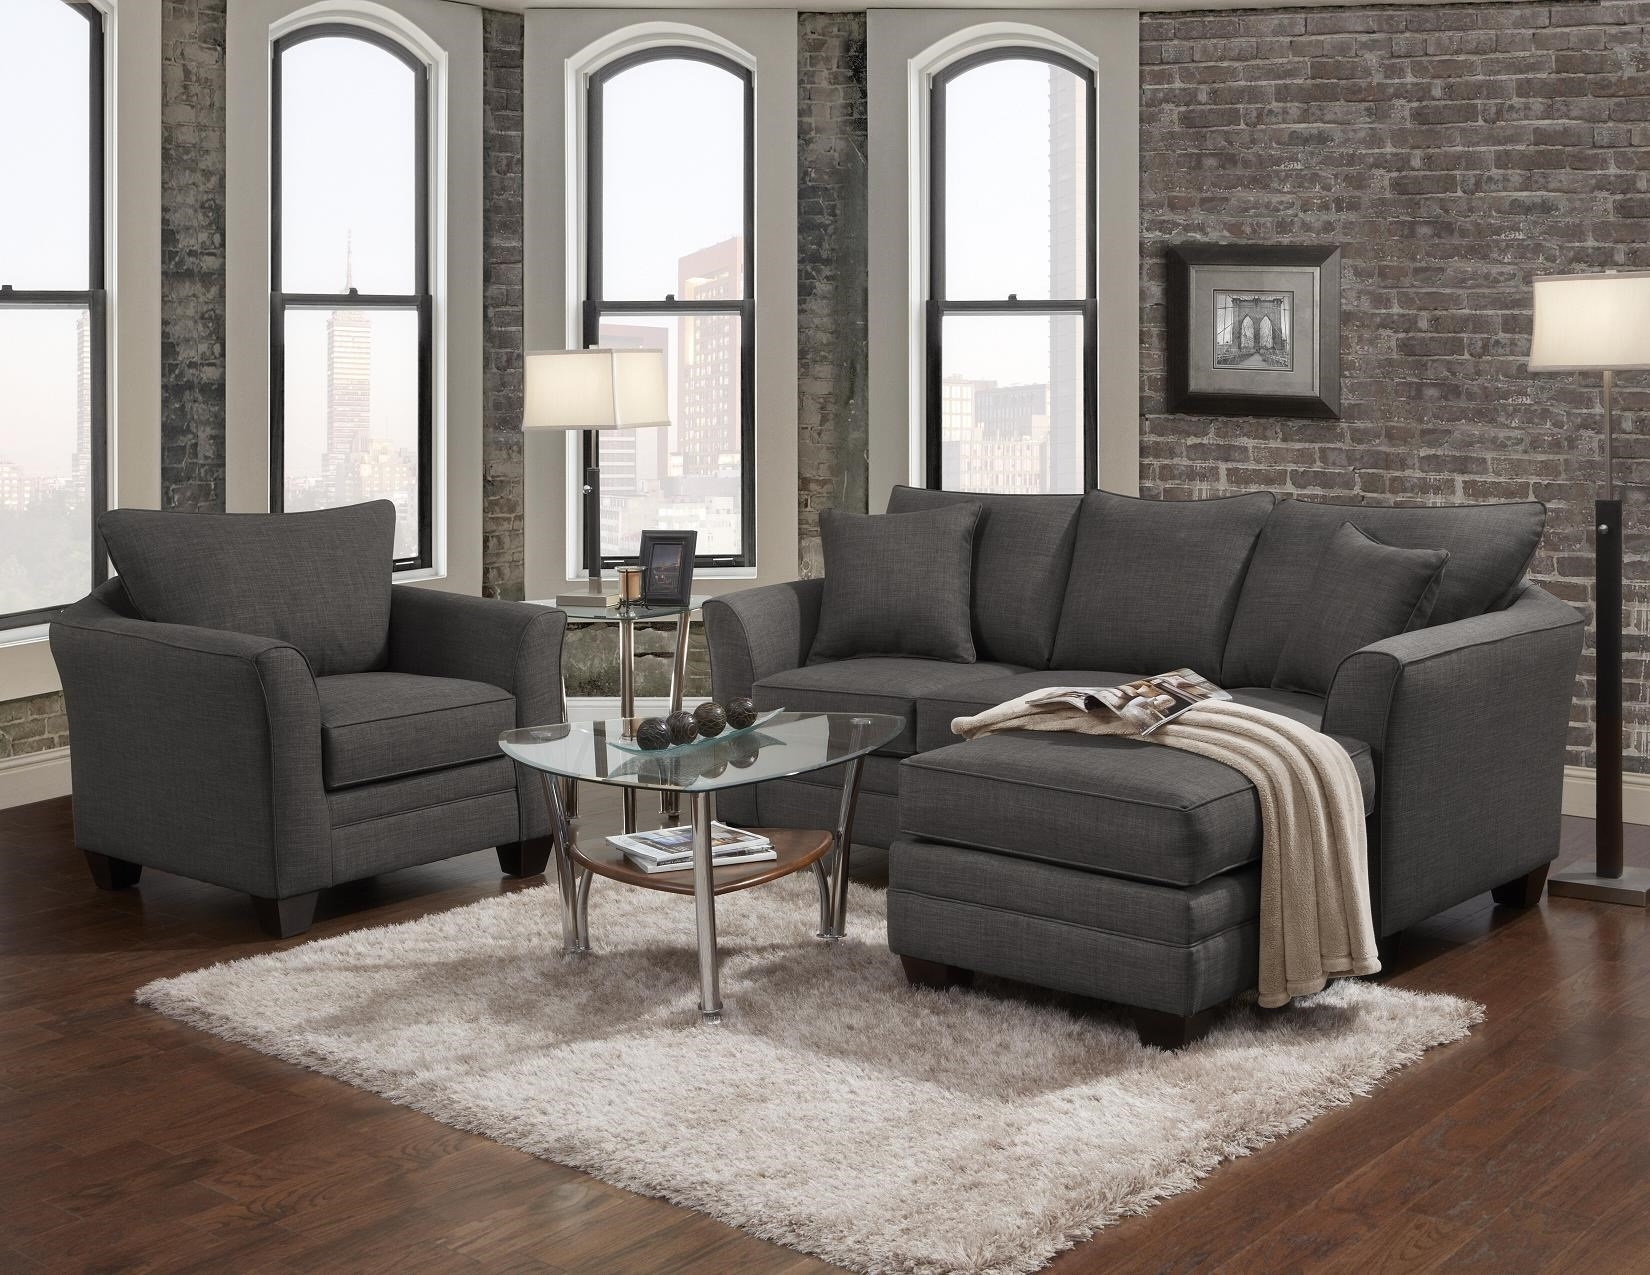 Uncategorized : Colored Sofa 2 In Fascinating Shop Sectionals Wolf Pertaining To Gardiners Sectional Sofas (View 5 of 10)